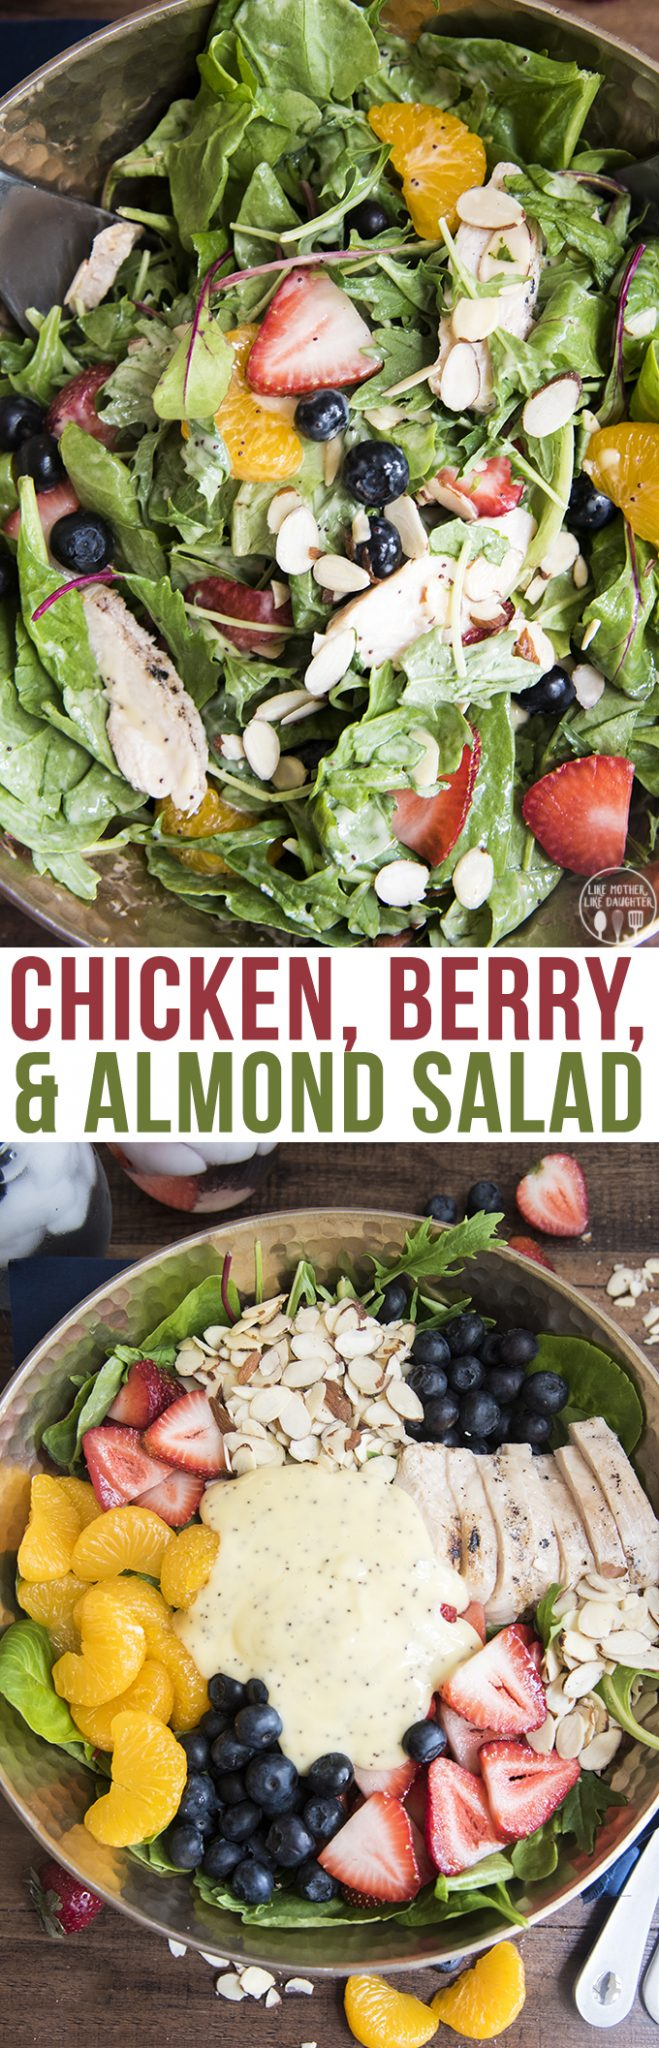 Chicken, Berry, and Almond Salad - This salad is full of so much goodness, with strawberries, blueberries, chicken, sliced almonds, and mandarin oranges all with a poppyseed dressing. Perfect for a refreshing salad all summer long!